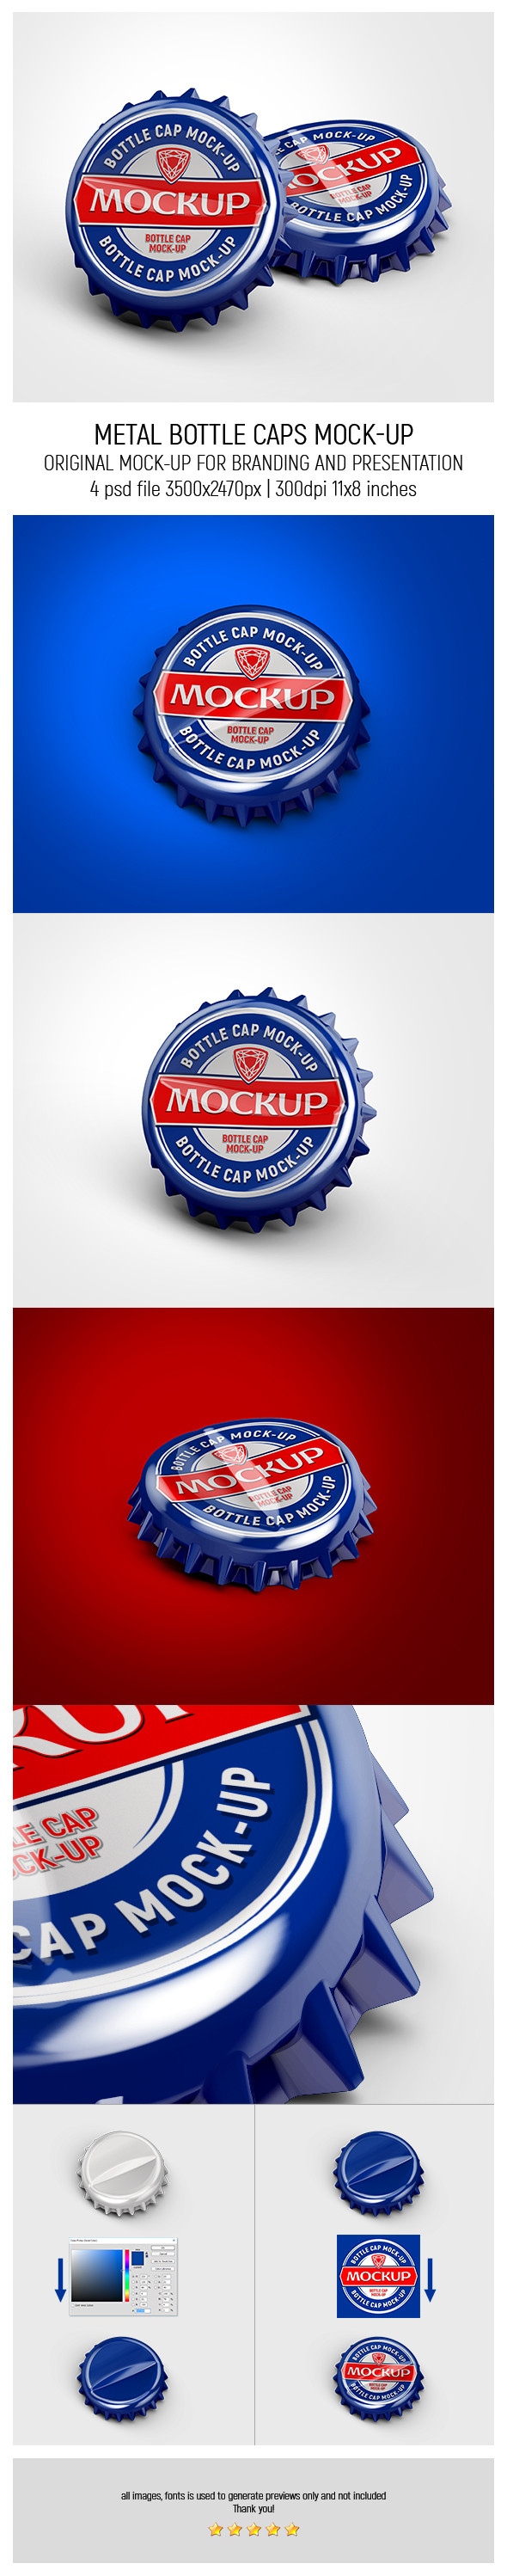 Metal Bottle Caps MockUp